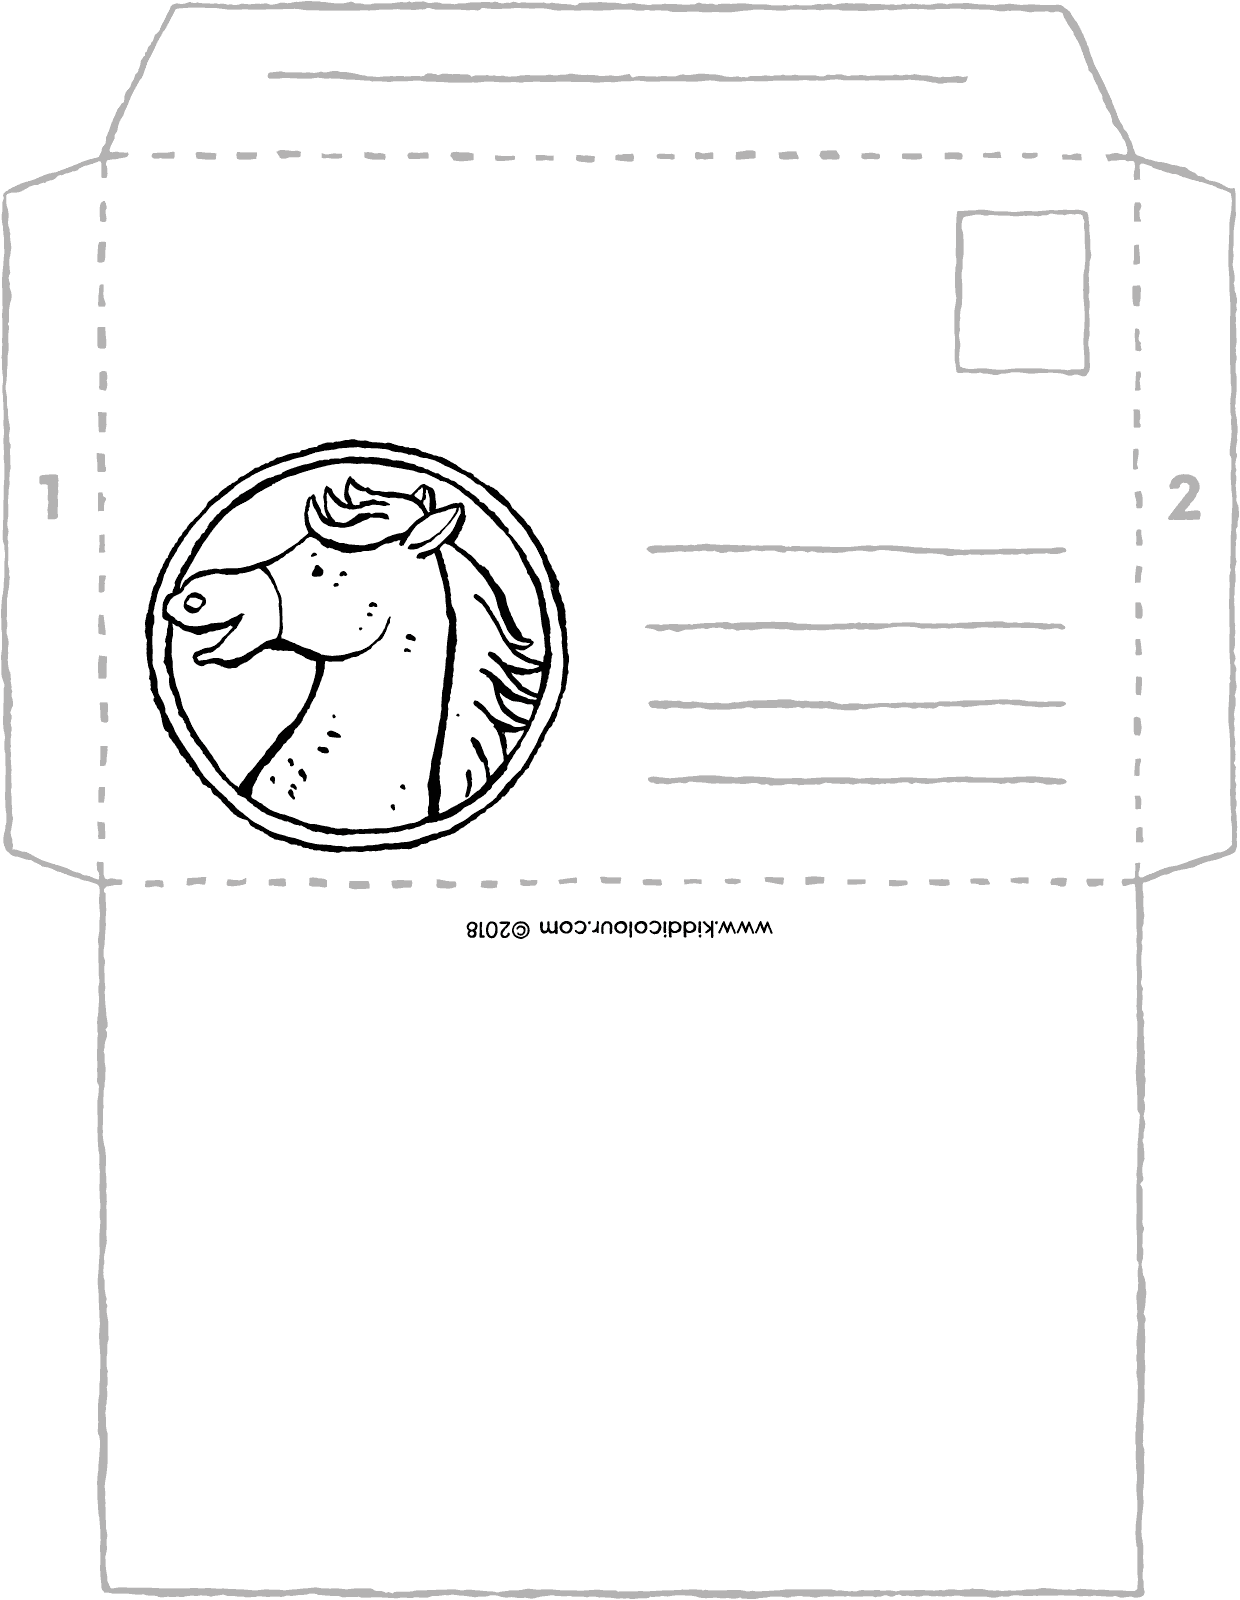 envelope for horse lovers colouring page drawing picture 01V